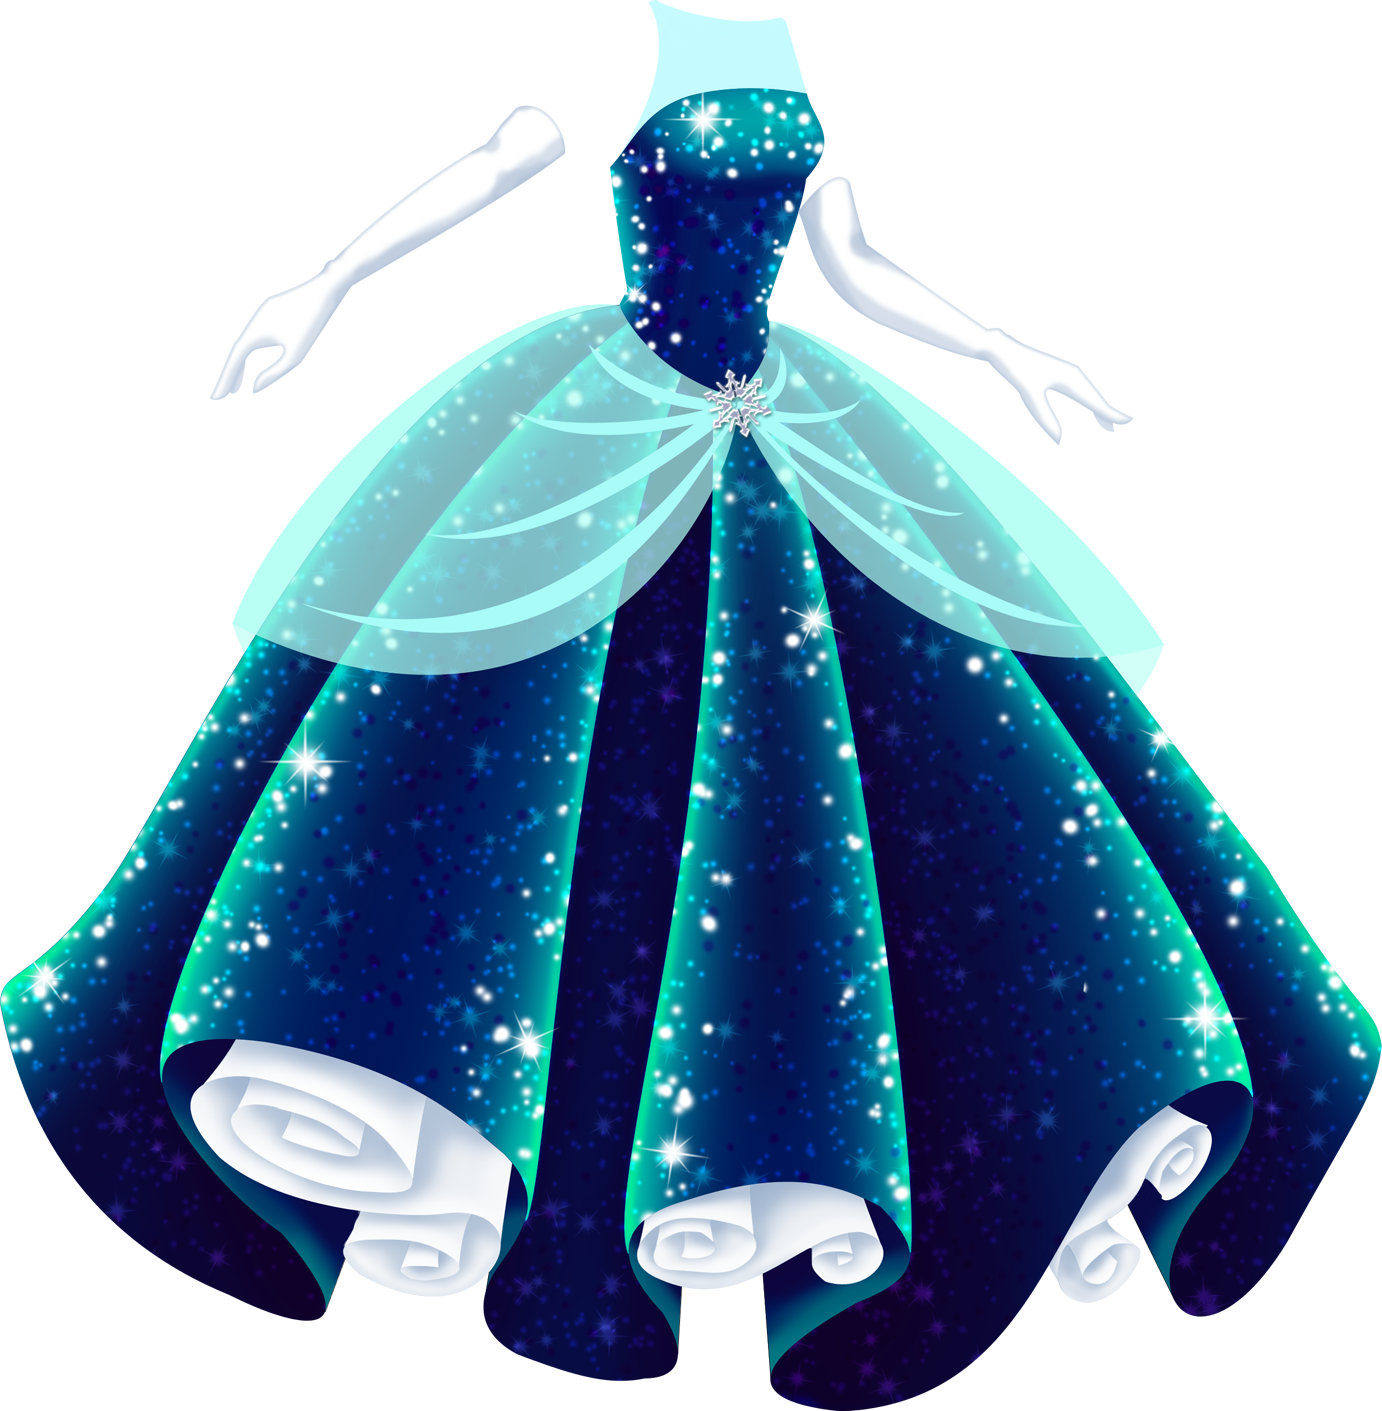 A deep blue ballgown with a full, bell-shaped skirt and a strapless bodice. The gown is midnight blue at the darkest parts, but where the light hits it, it's a vibrant blue-green, and it sparkles all over, shimmering with light and dark blue, purple and white light. It has an overskirt of semi-transparent light blue tule, gathered at the front and decorated with a silver snowflake. From the top of the bodice to the neckline is an illusion neckline of semi-transparent light blue tulle, which leaves the shoulders bare. There are long white gloves that go with it, and the white petticoat is visible at the hem.